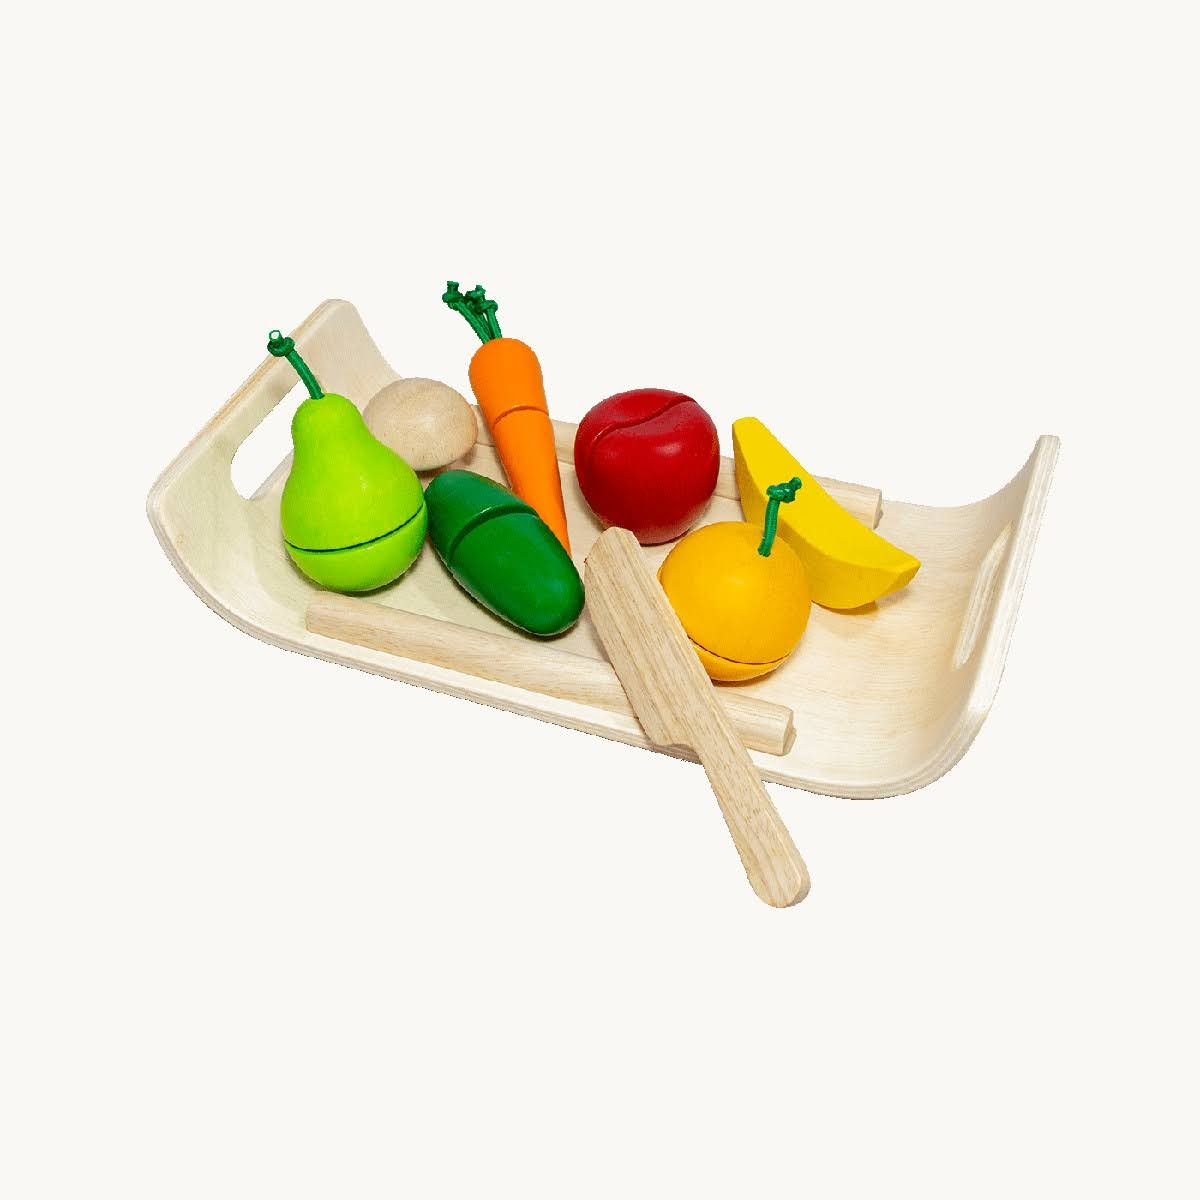 Plan Toys Assorted Fruit and Vegetable Set | MightyNest